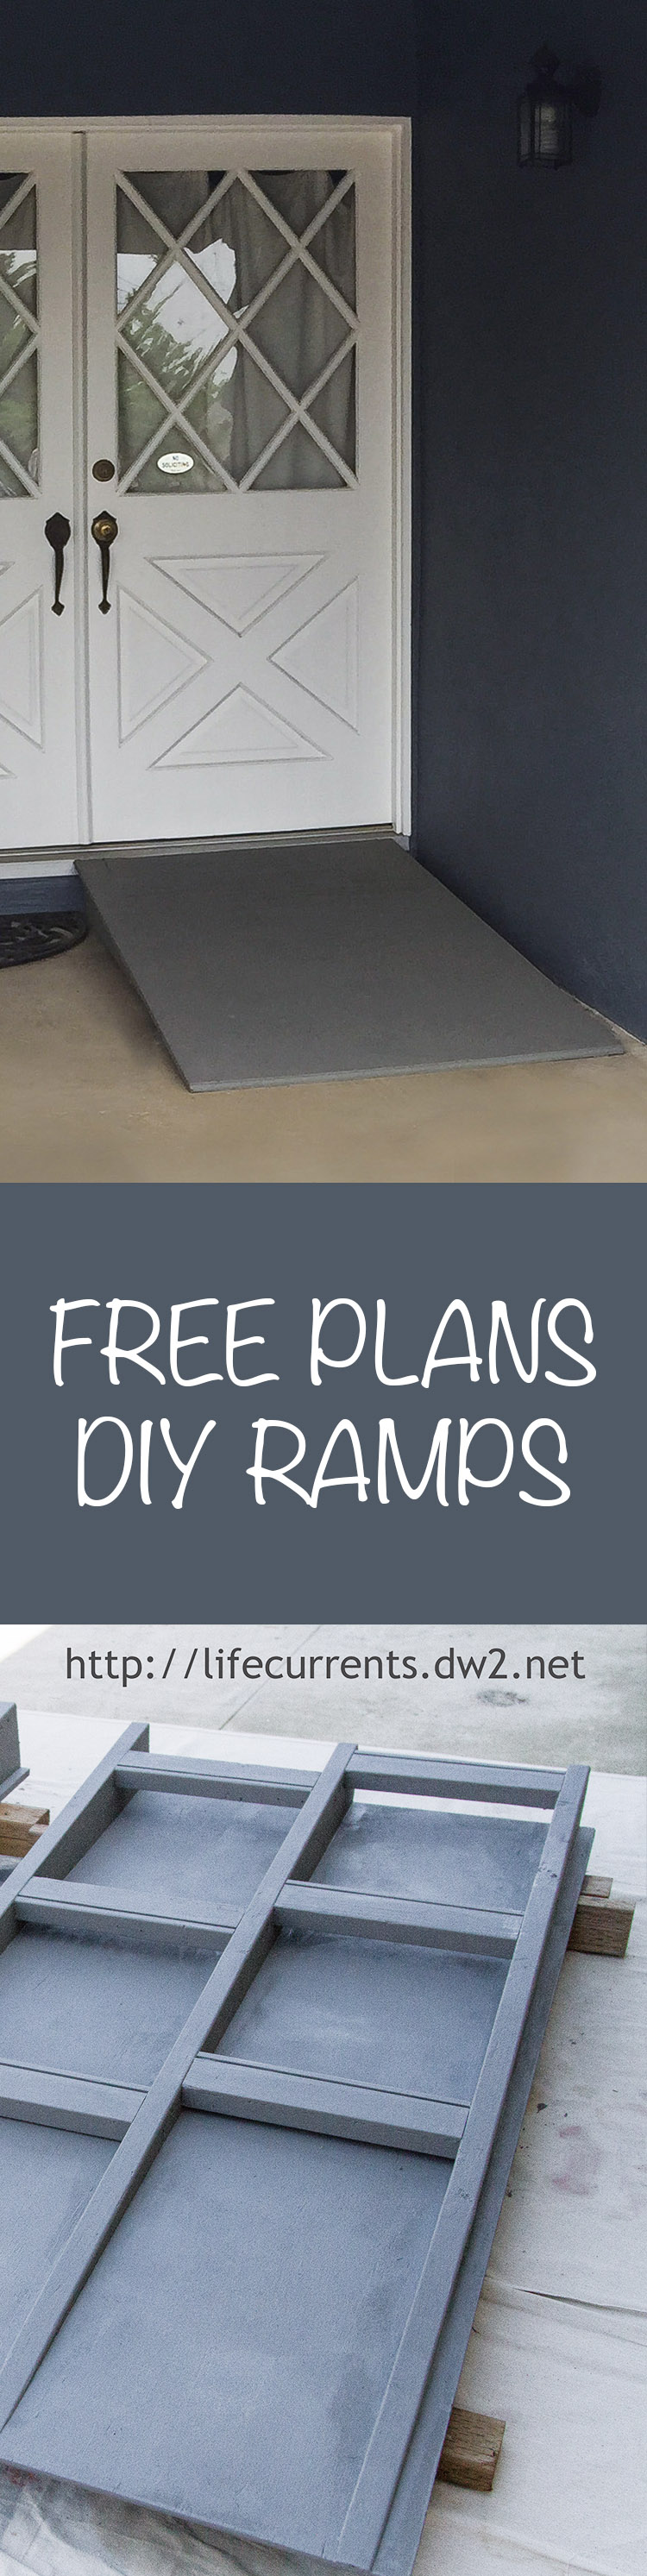 Wheelchair Accessible Ramps with Free Building Plans